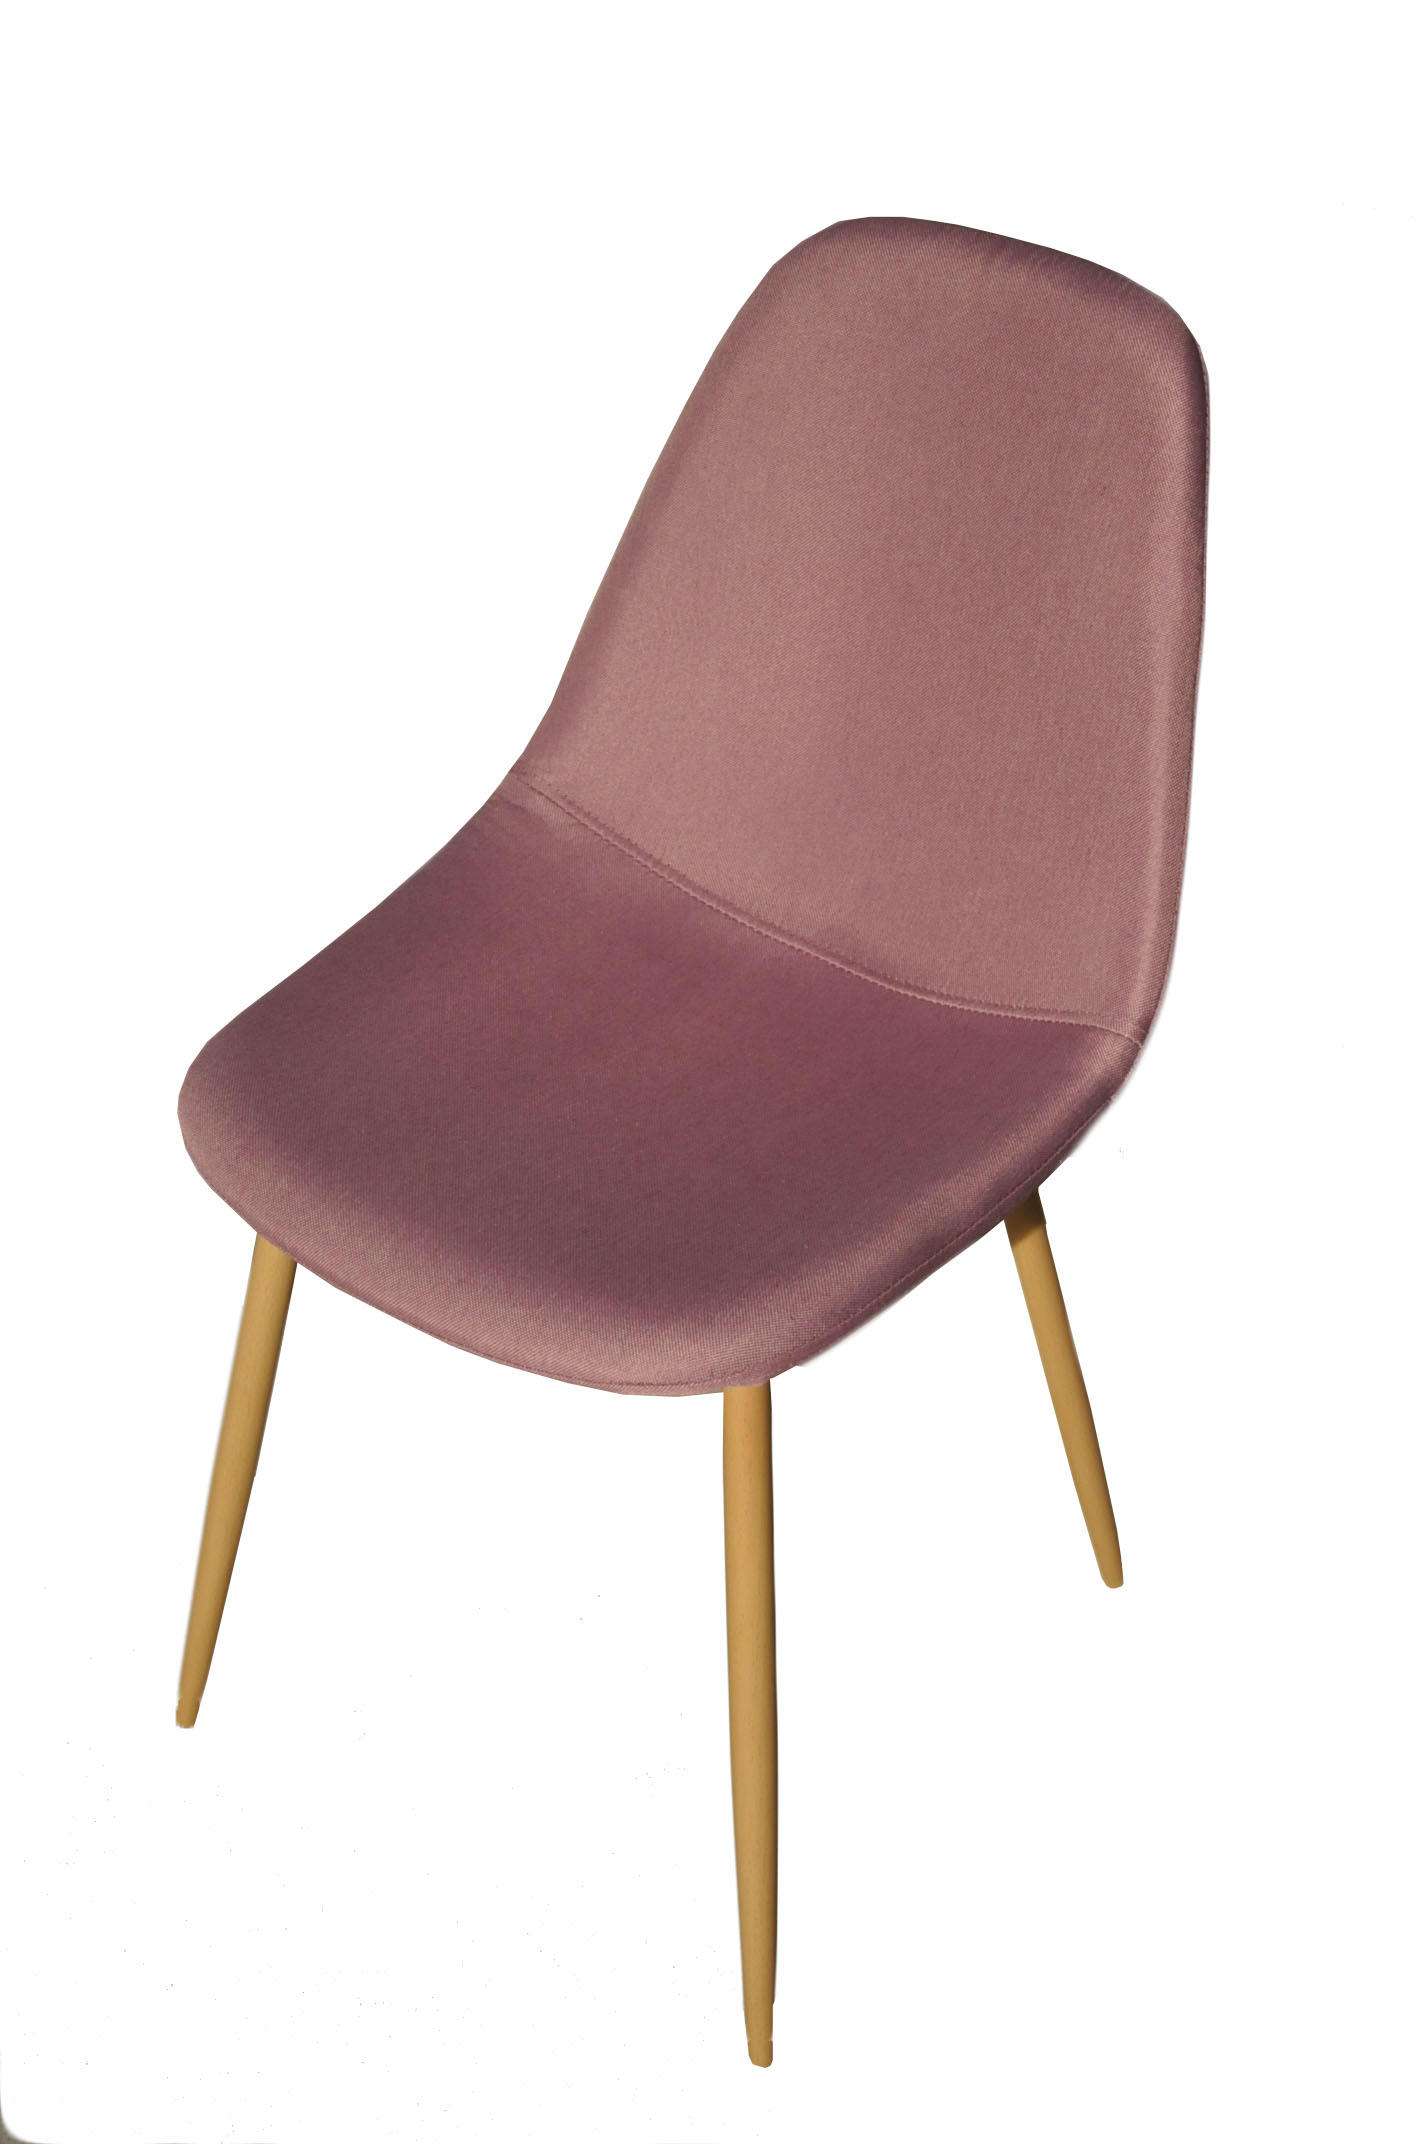 Emejing chaise de jardin rose contemporary design trends for Chaise de table design